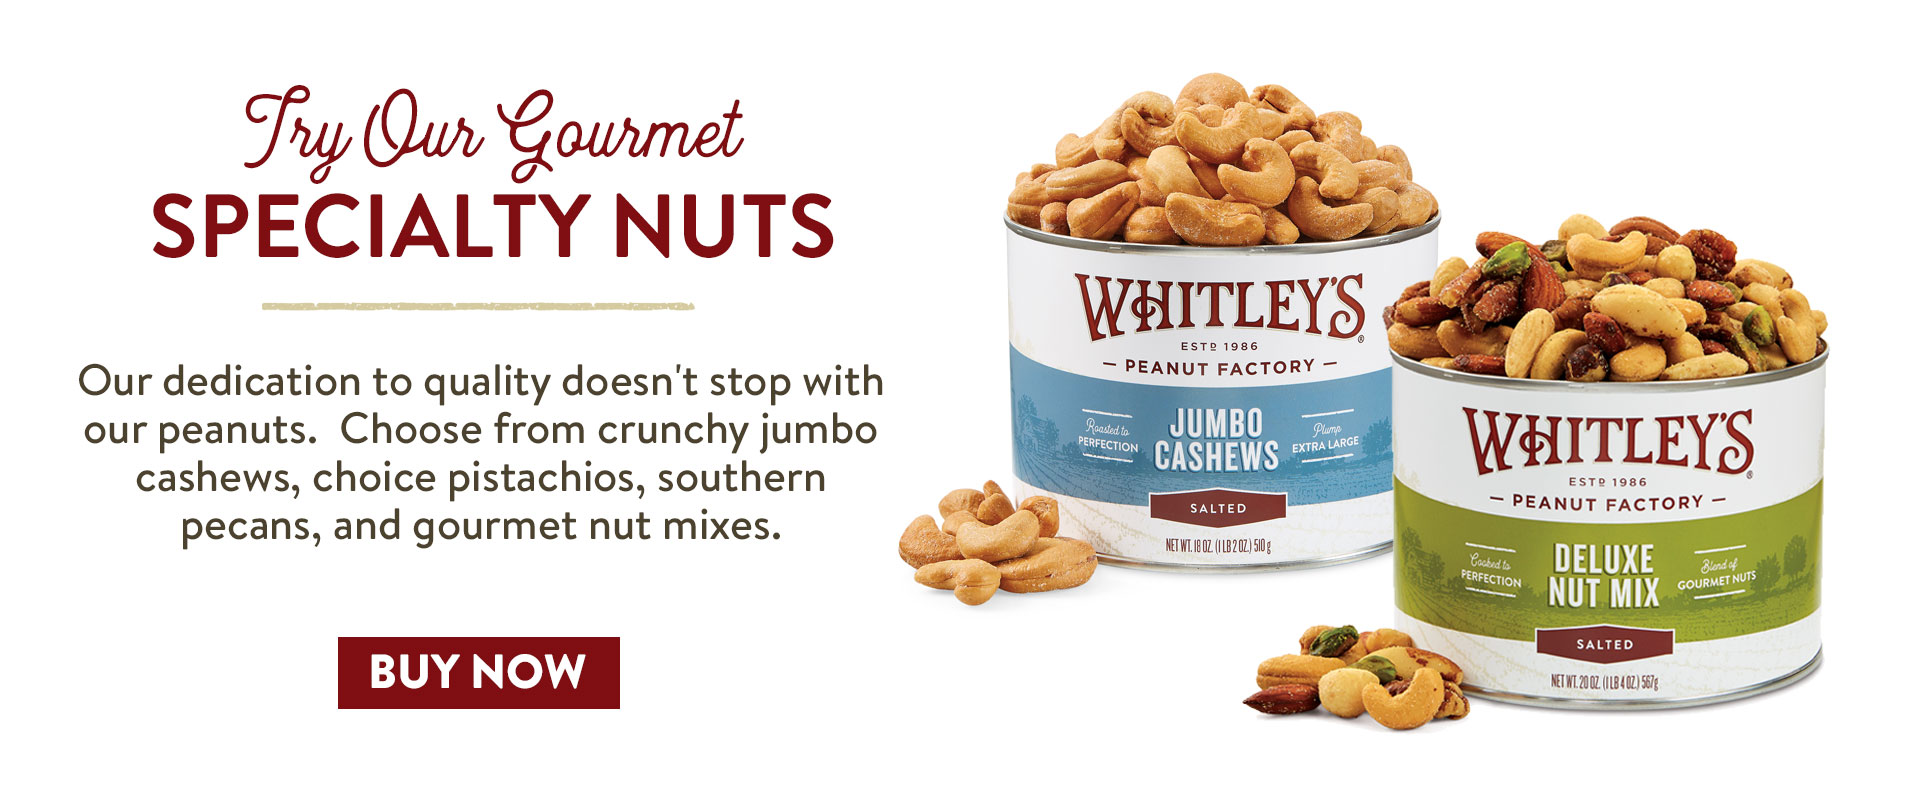 Buy Gourmet Specialty Nuts Here